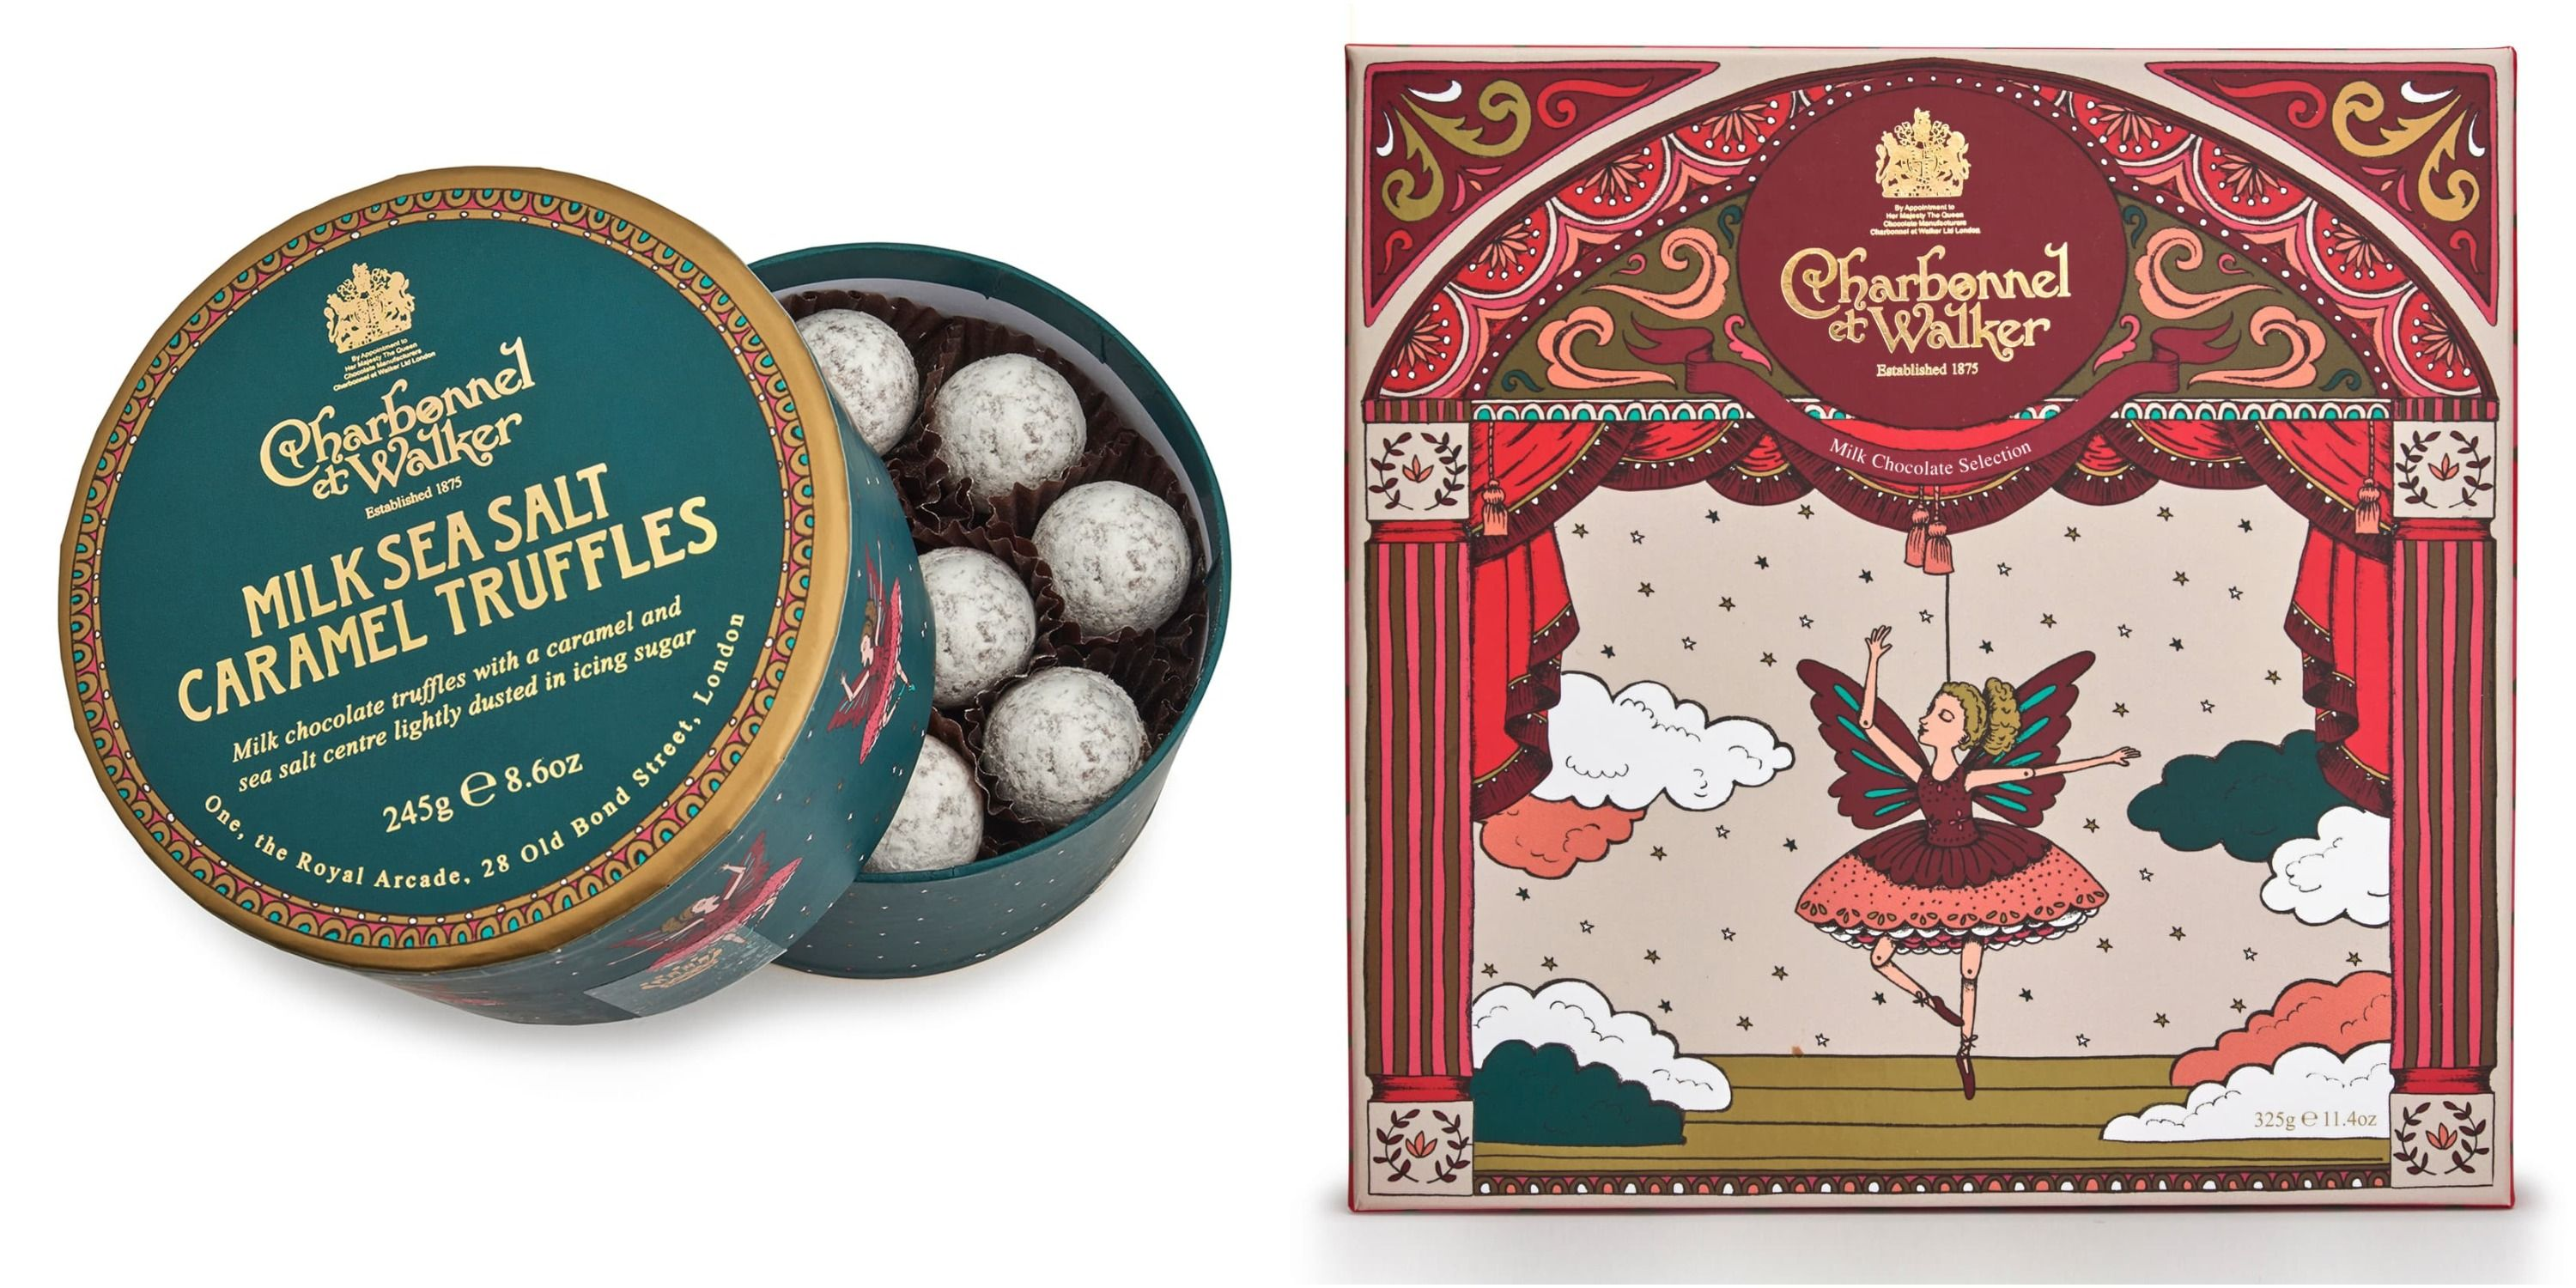 The Royal Family Loves This Chocolate and Now You Can Get It at Nordstrom